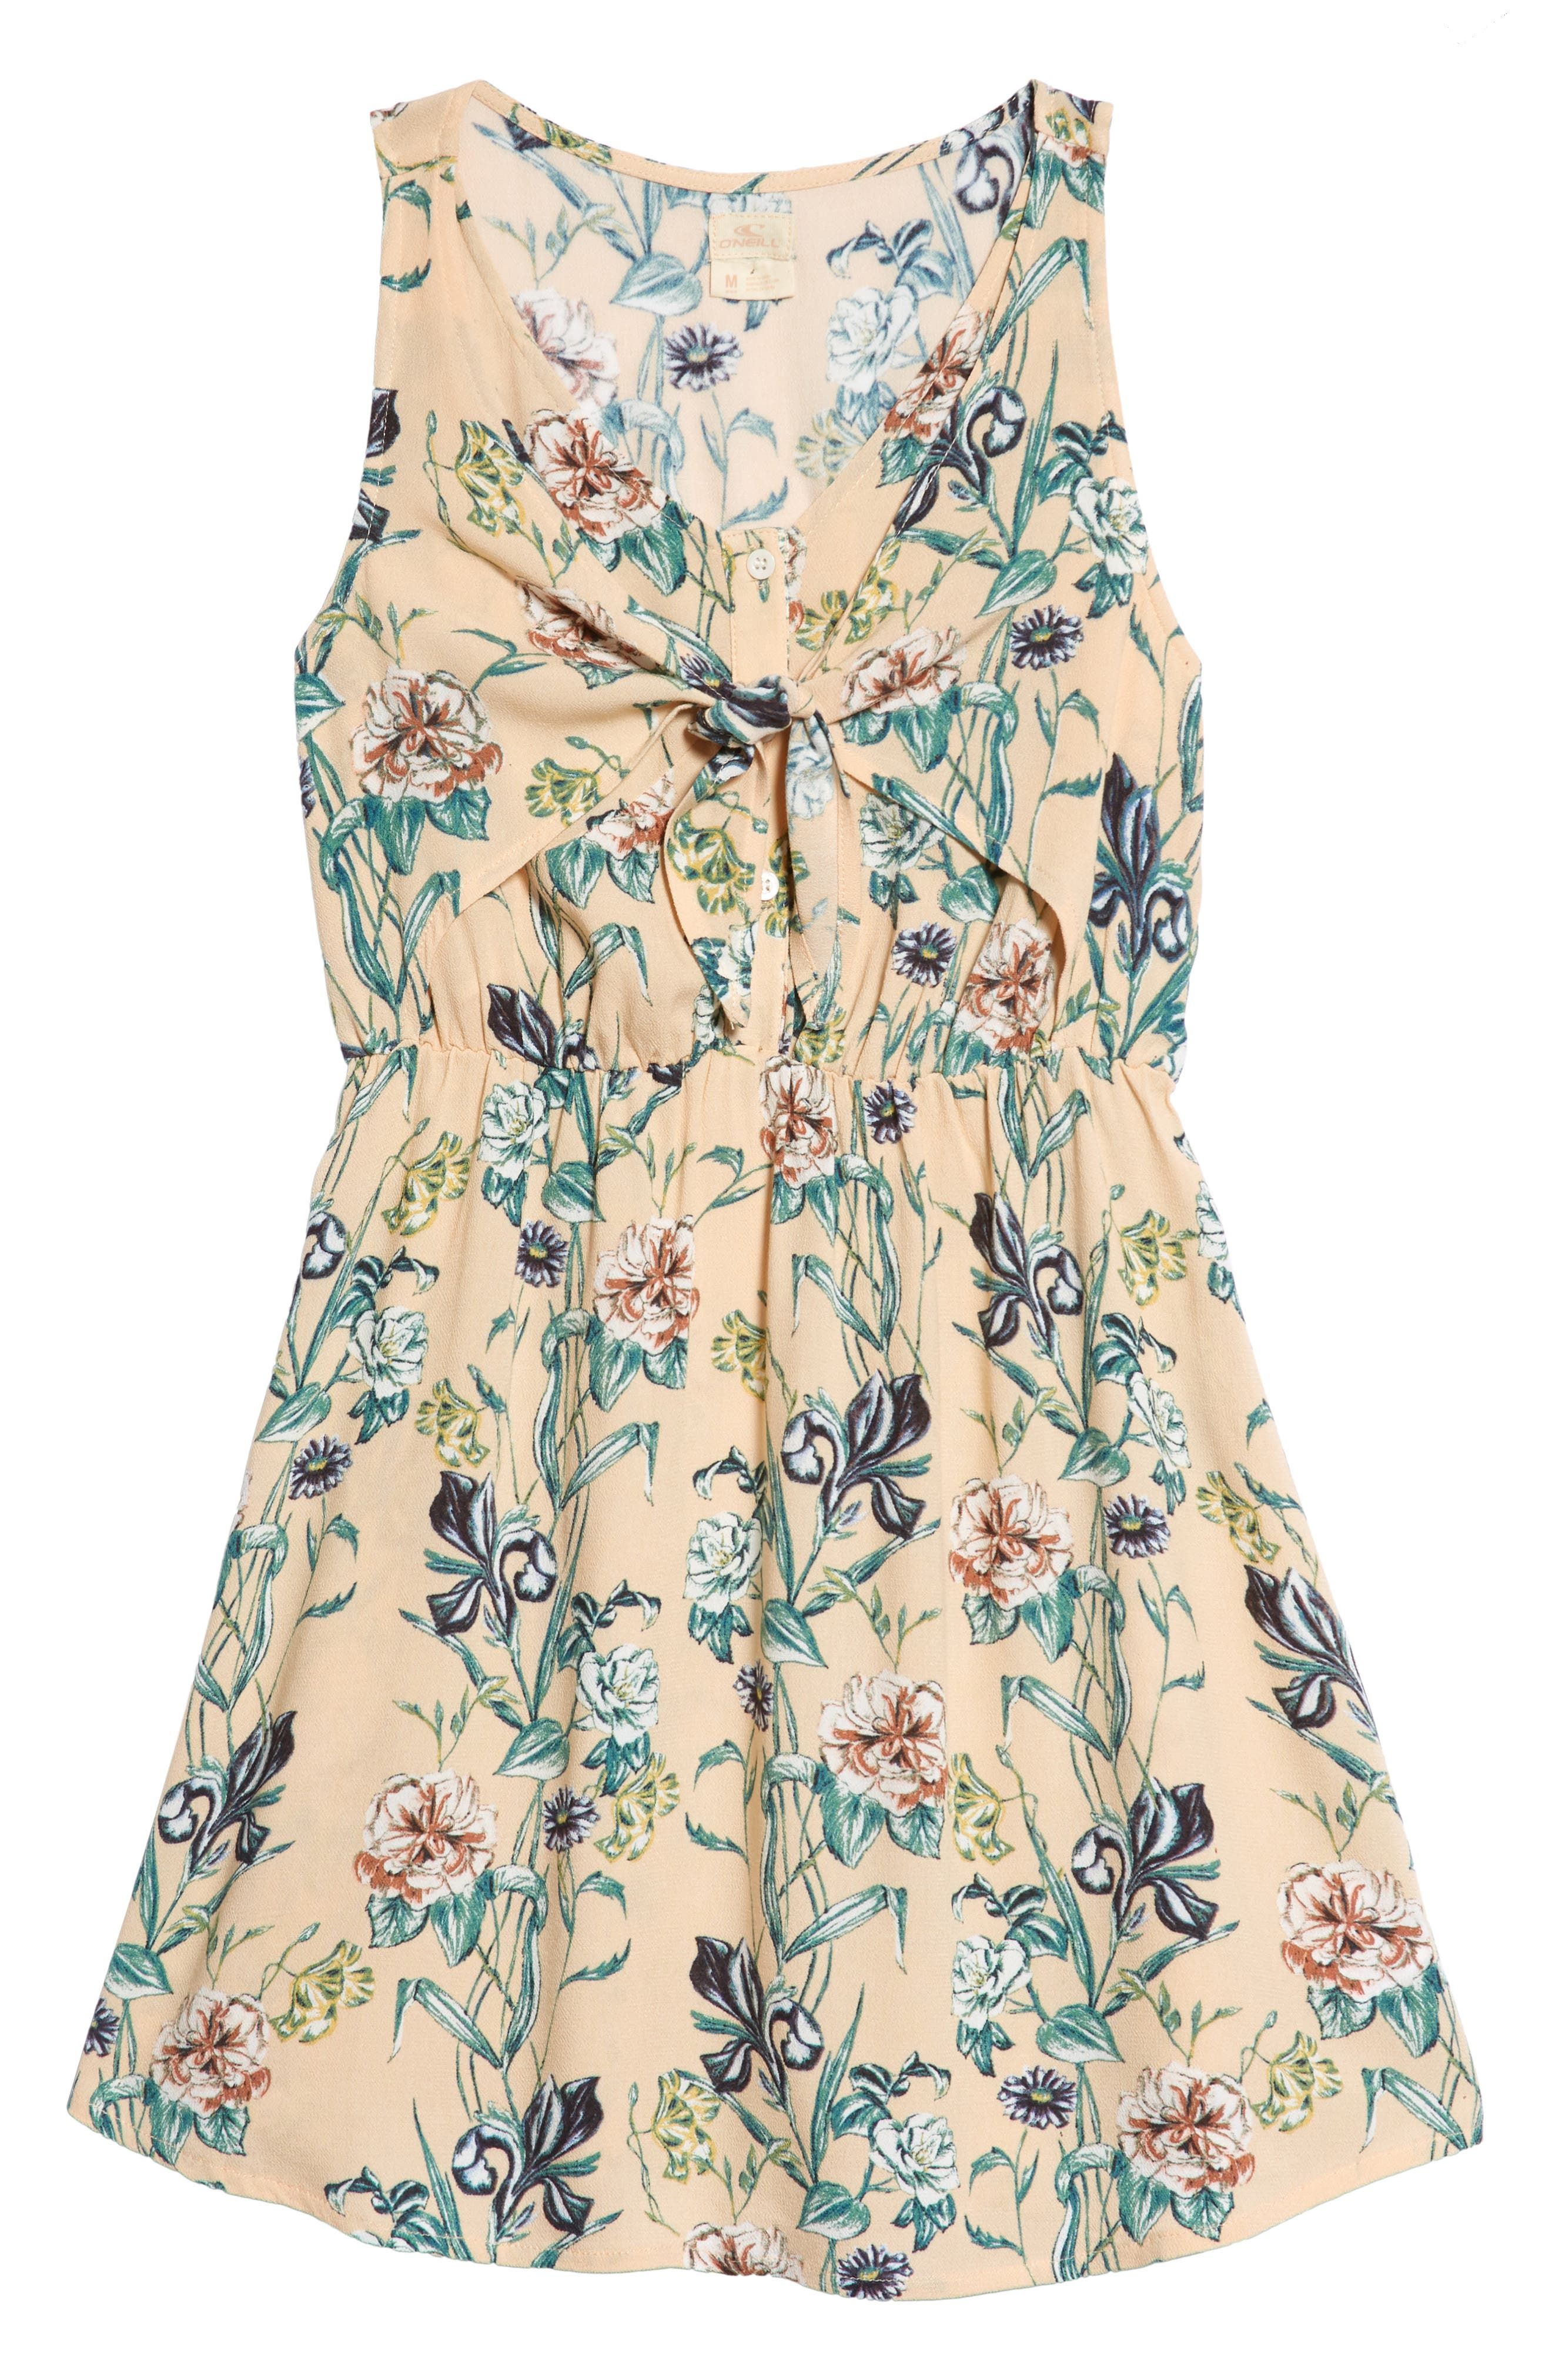 Arky Knotted Floral Print Dress,                         Main,                         color, 900